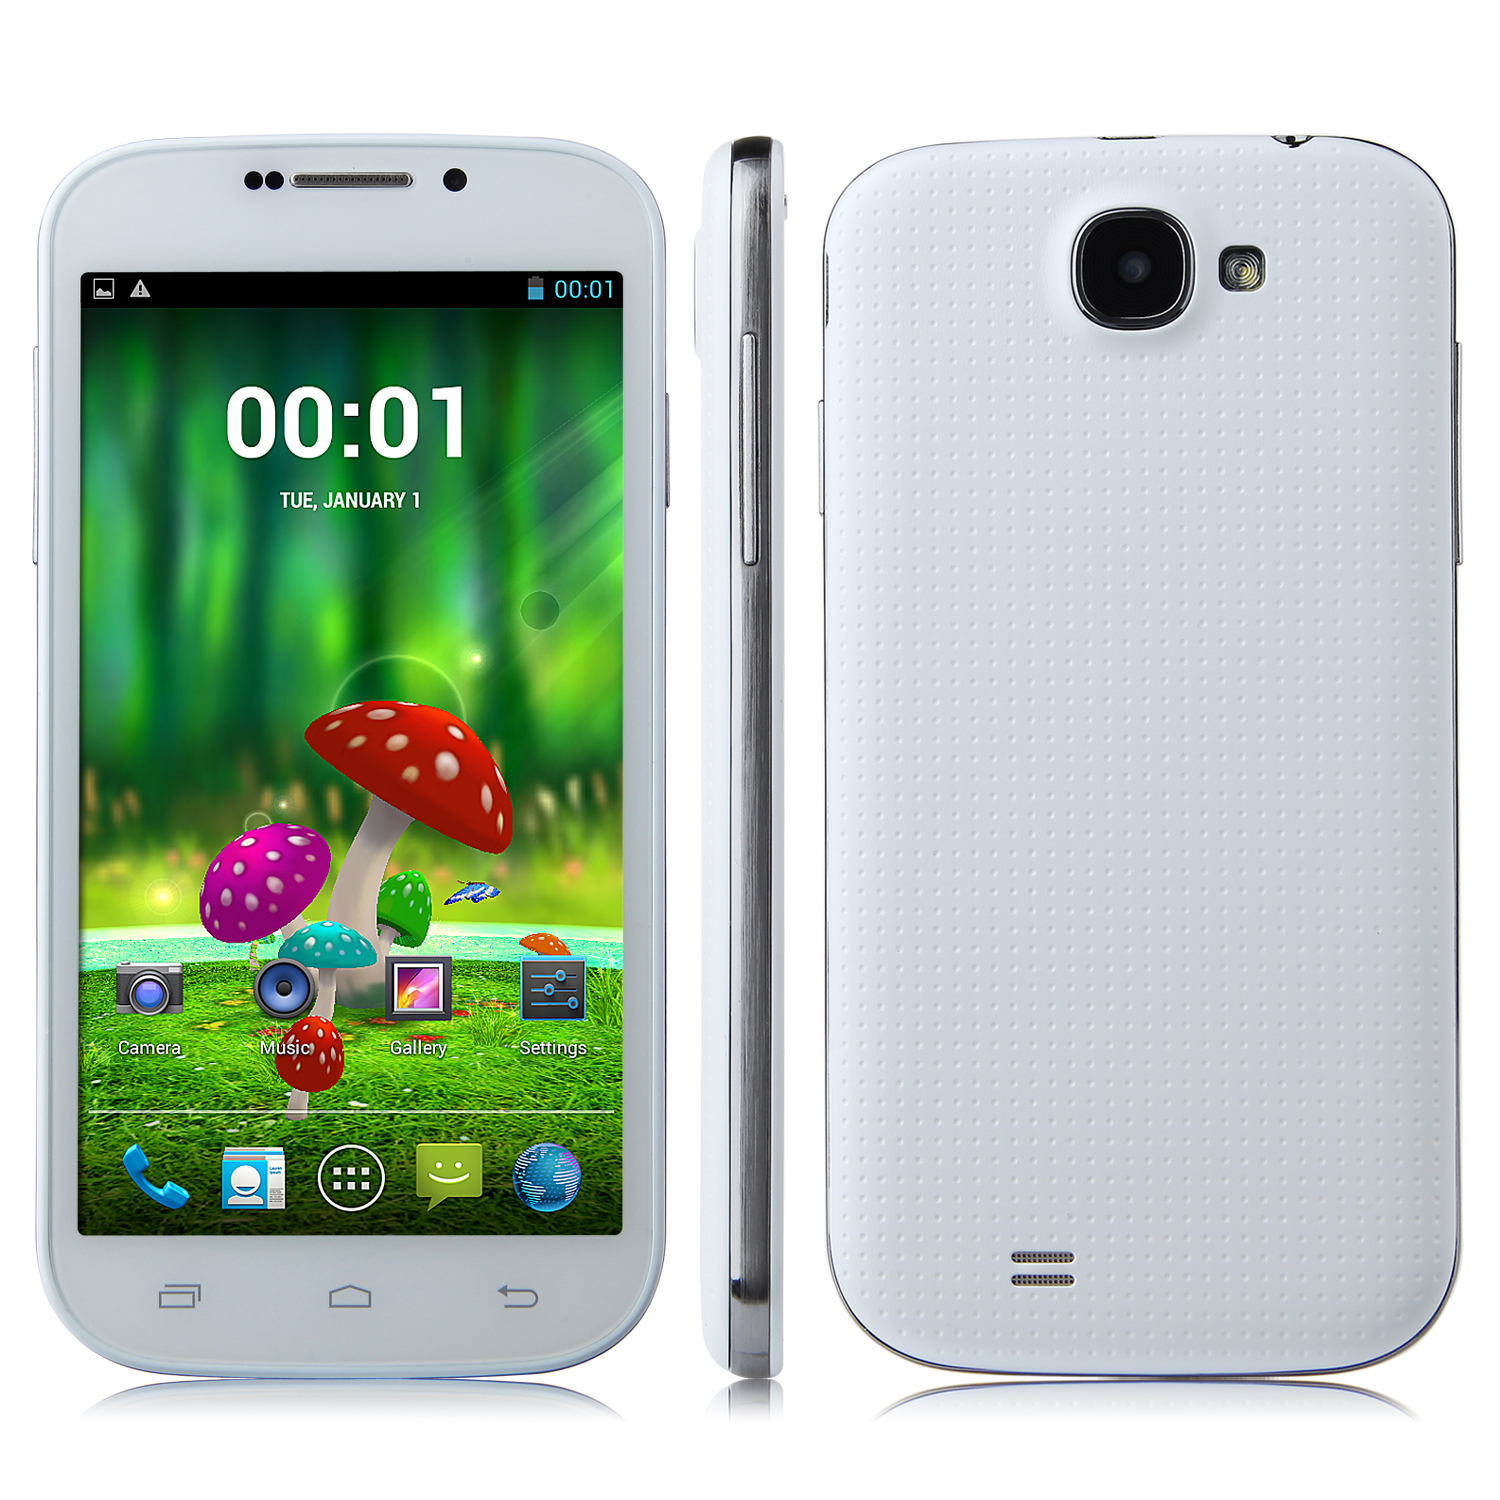 Tengda 9006 Smartphone Android 4.2 MTK6582 Quad Core 5.0 Inch Gesture Sensing 3G White